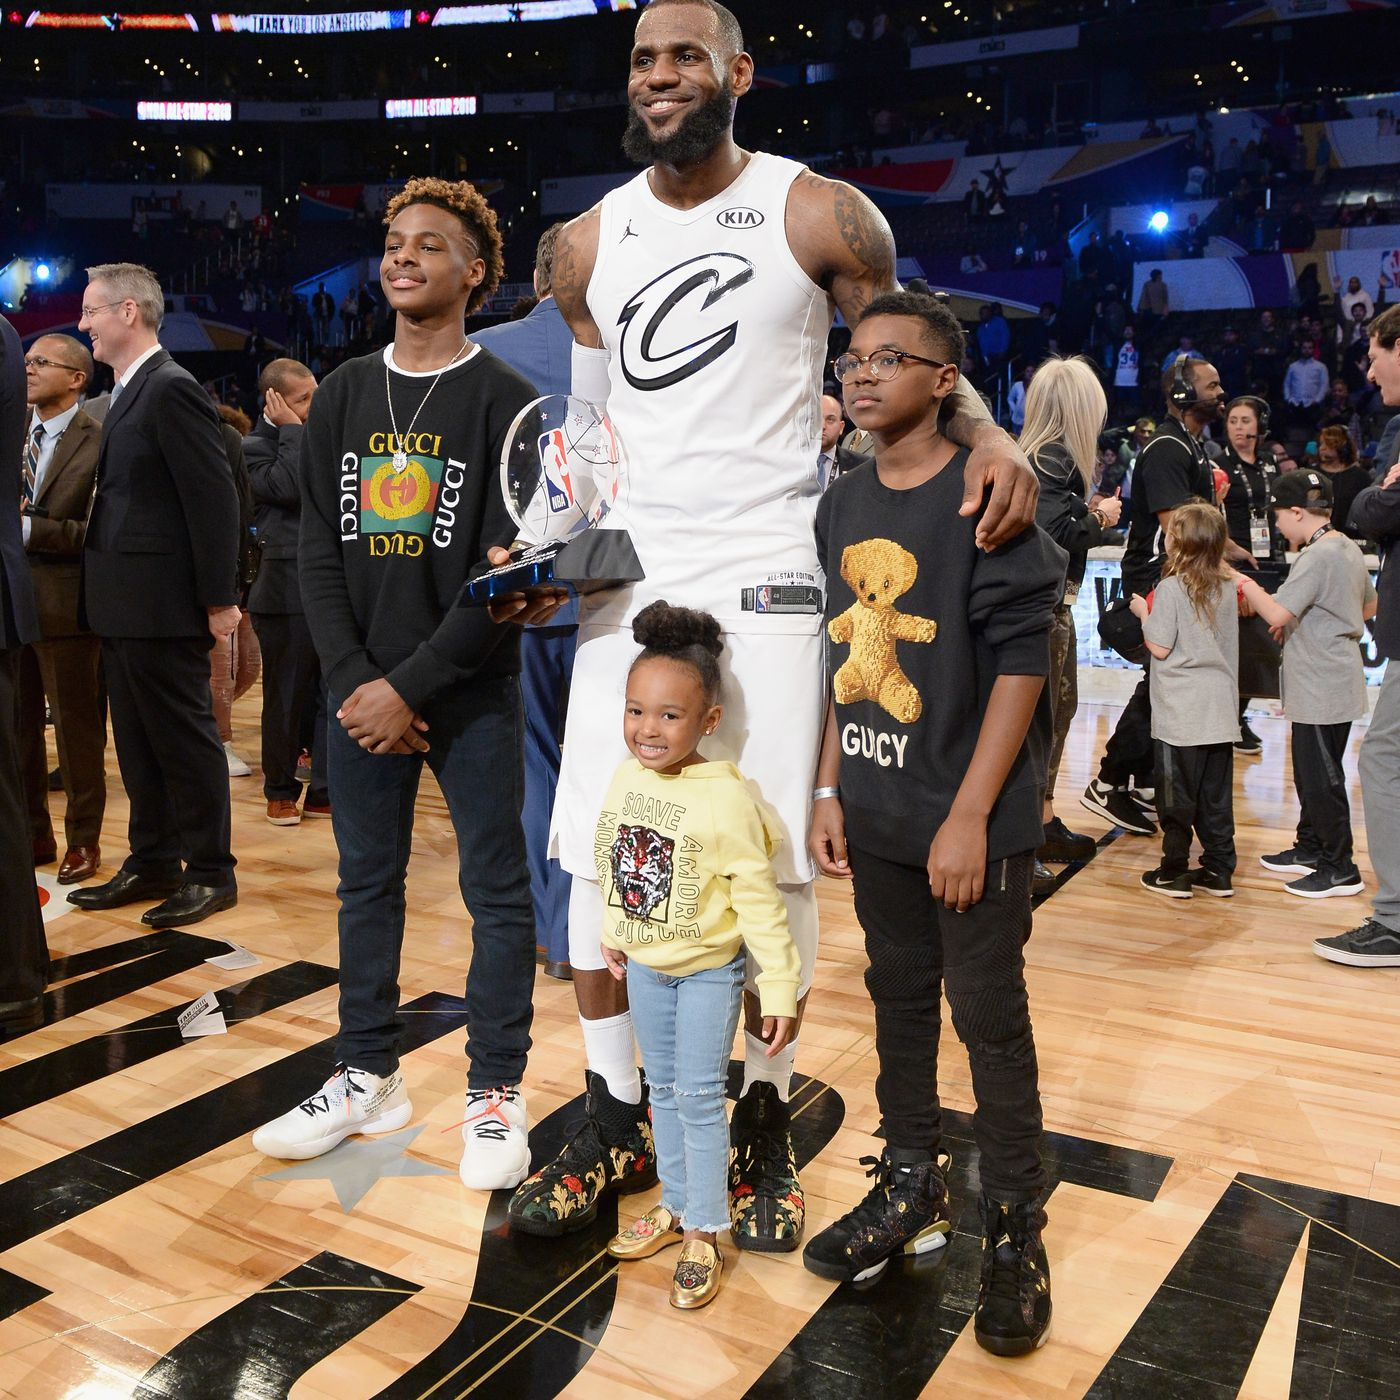 f3d5b934980 NBA Free Agency Rumors  Gary Payton says LeBron James  son has committed to  a Los Angeles high school - Silver Screen and Roll